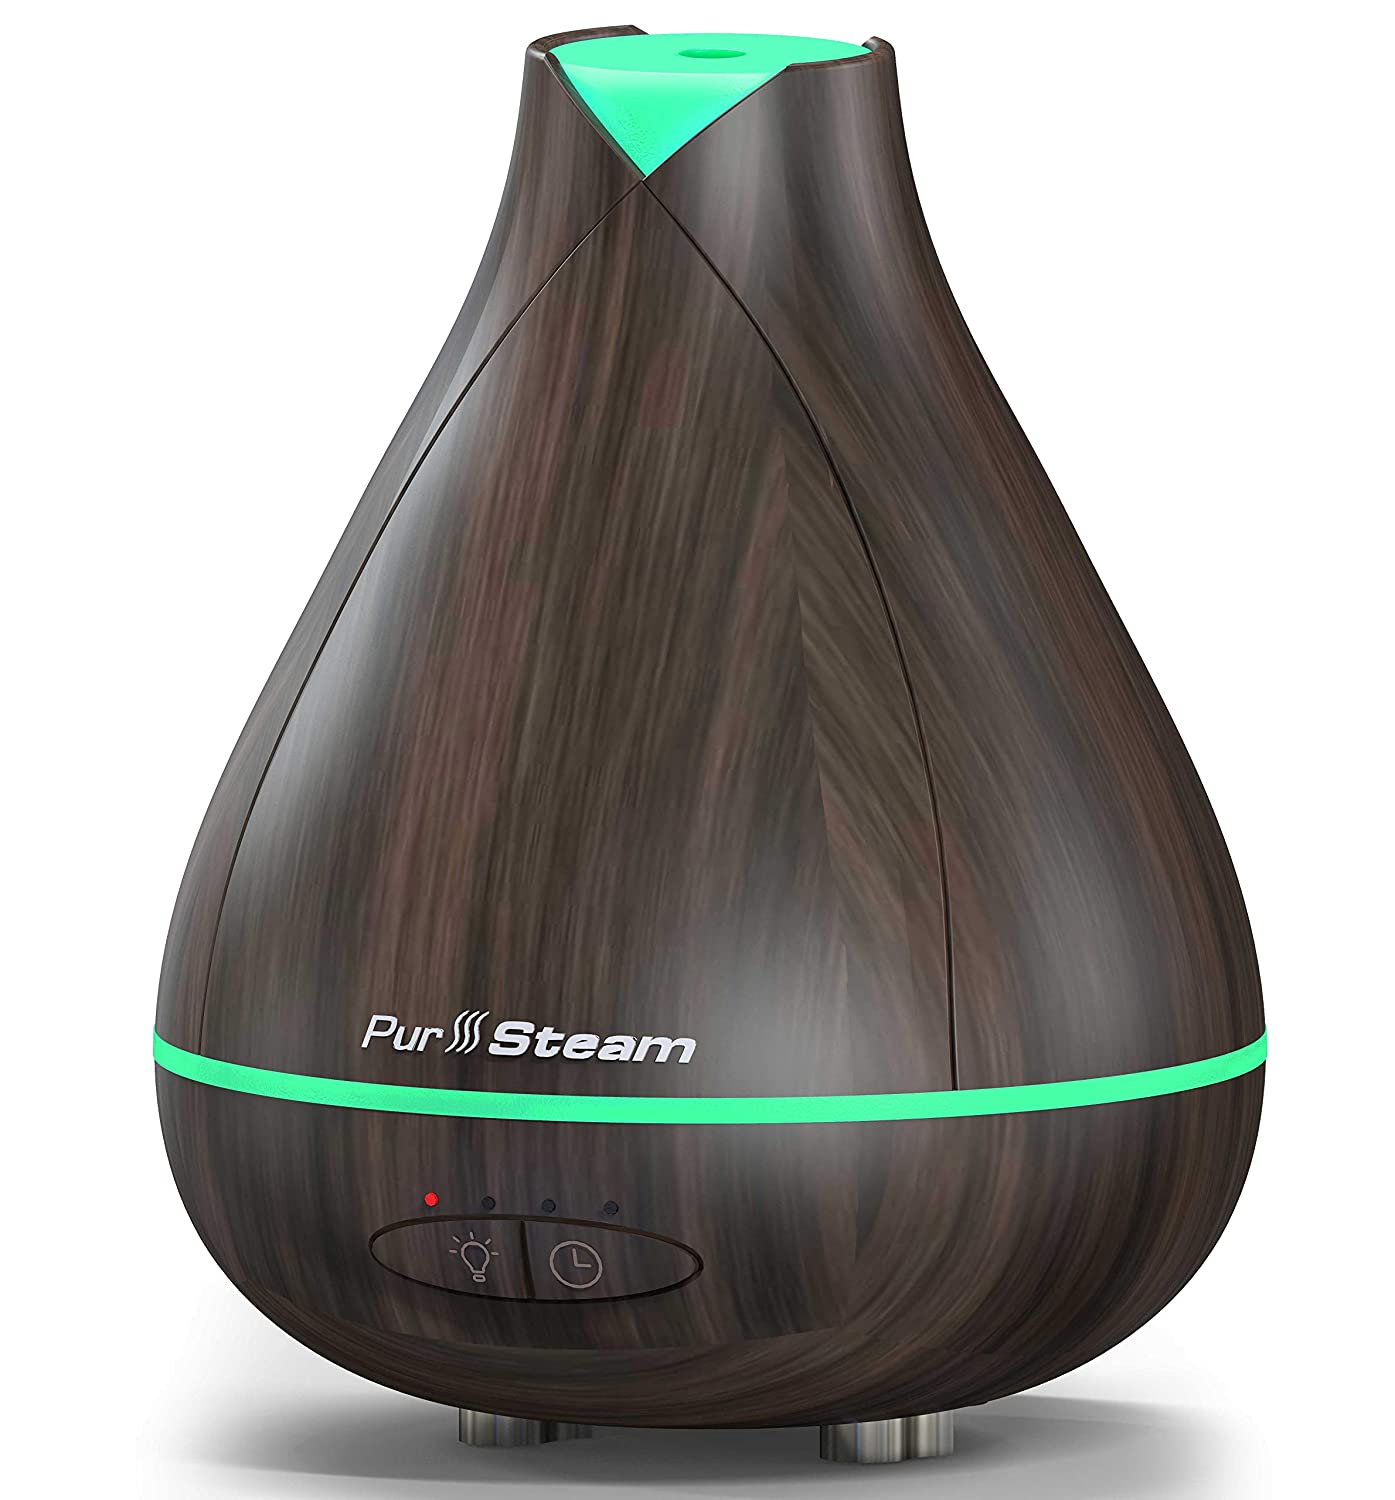 PurSteam 530ml Essential Oil Diffuser, Noise Reduce Design - Quieter, Longer Mist Output, 8-15 Hours Ultrasonic Aroma Diffuser with Waterless Auto-off, 7-Color LED Soft Light for Home, Office, Yoga